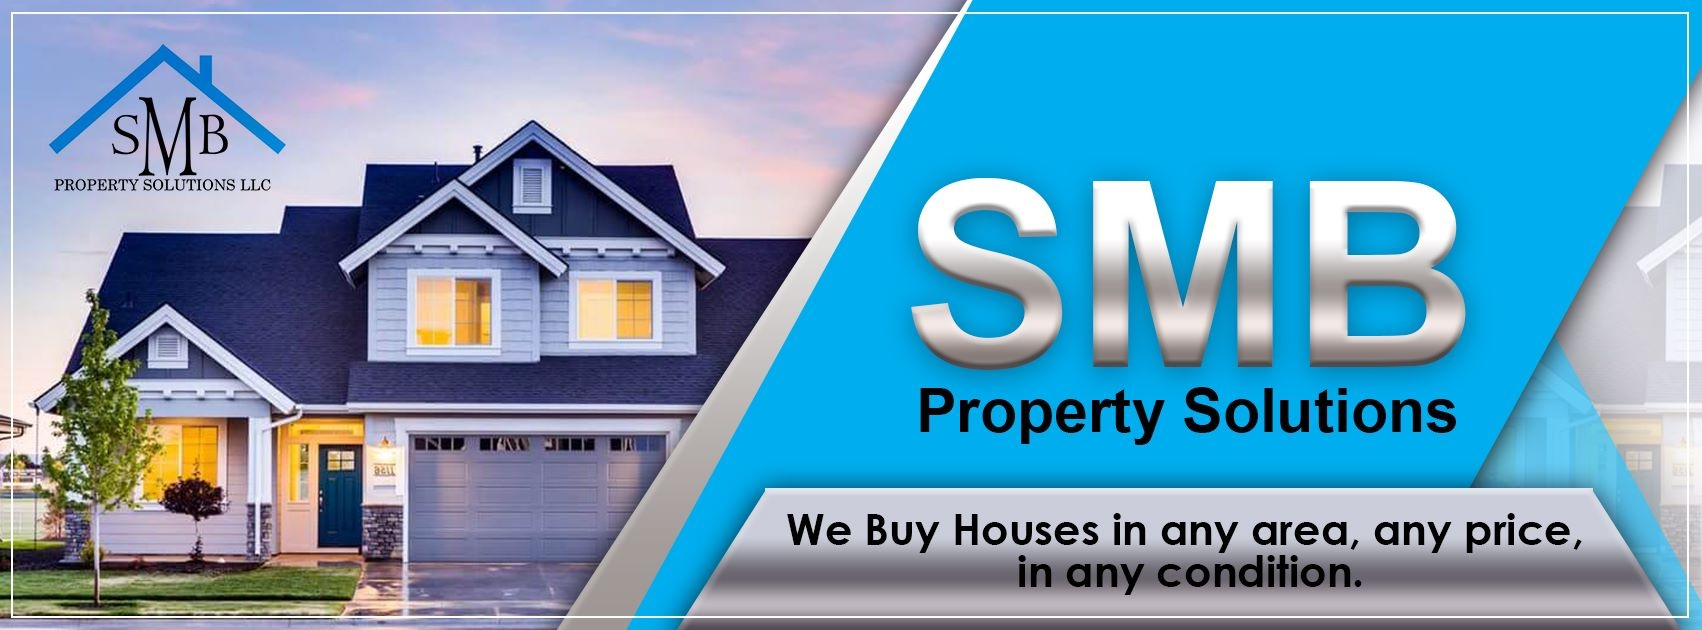 SMB Property Solutions LLC (@sharon294) Cover Image